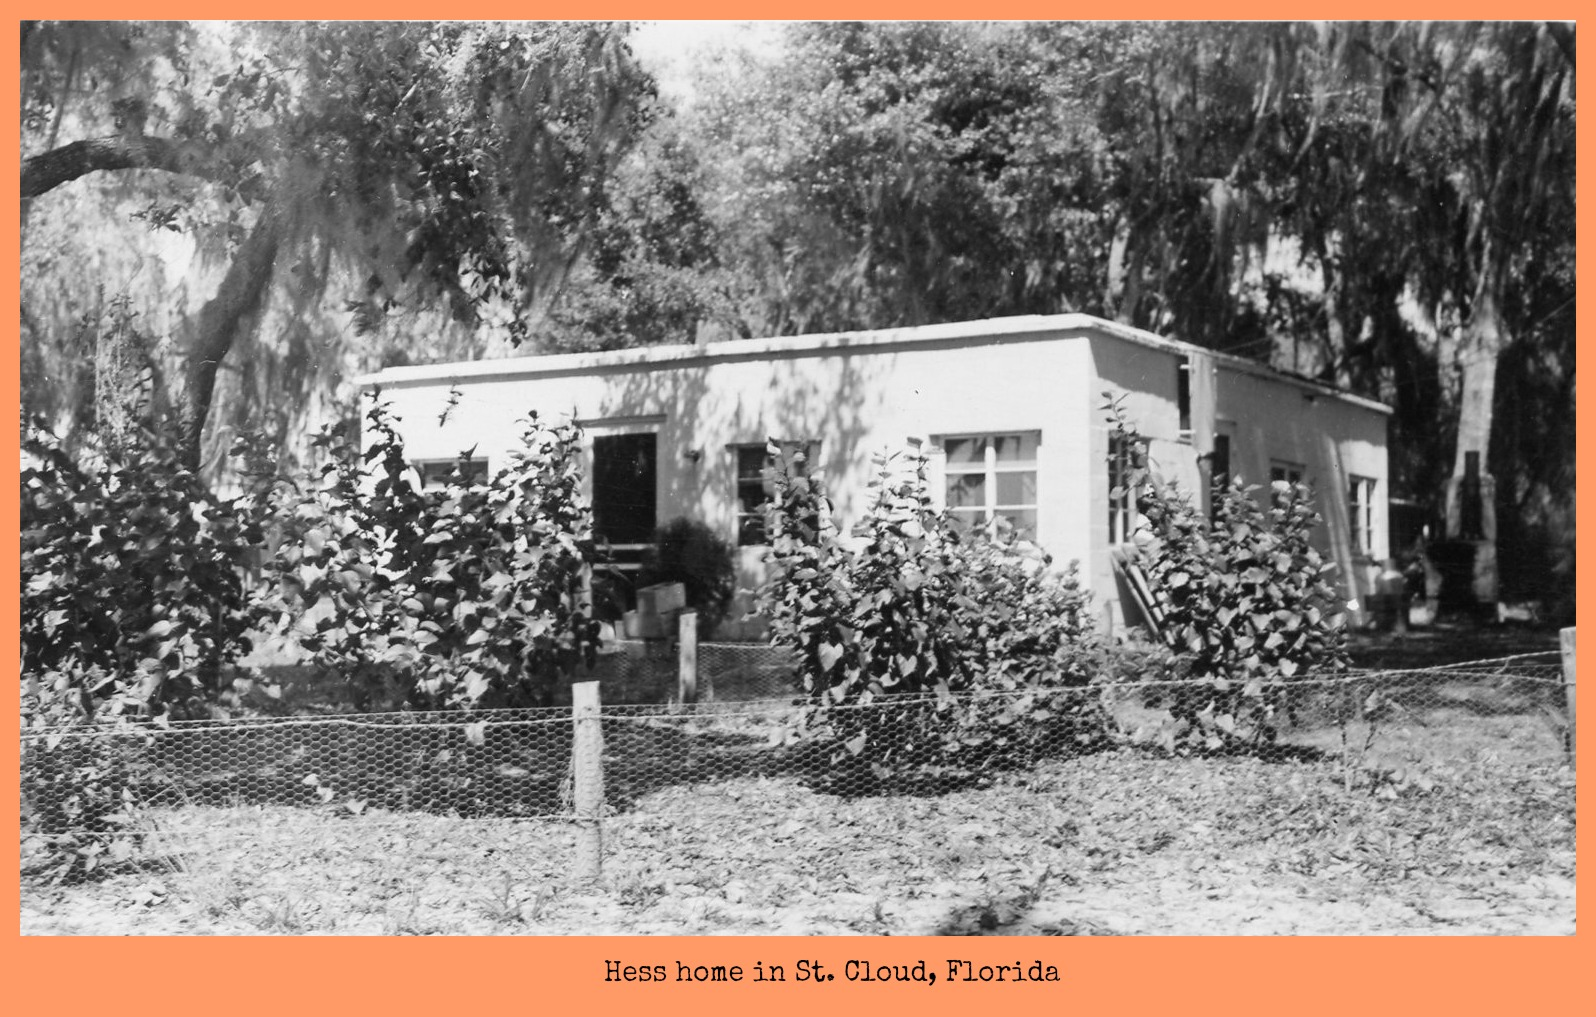 hess home in St. Cloud, Florida